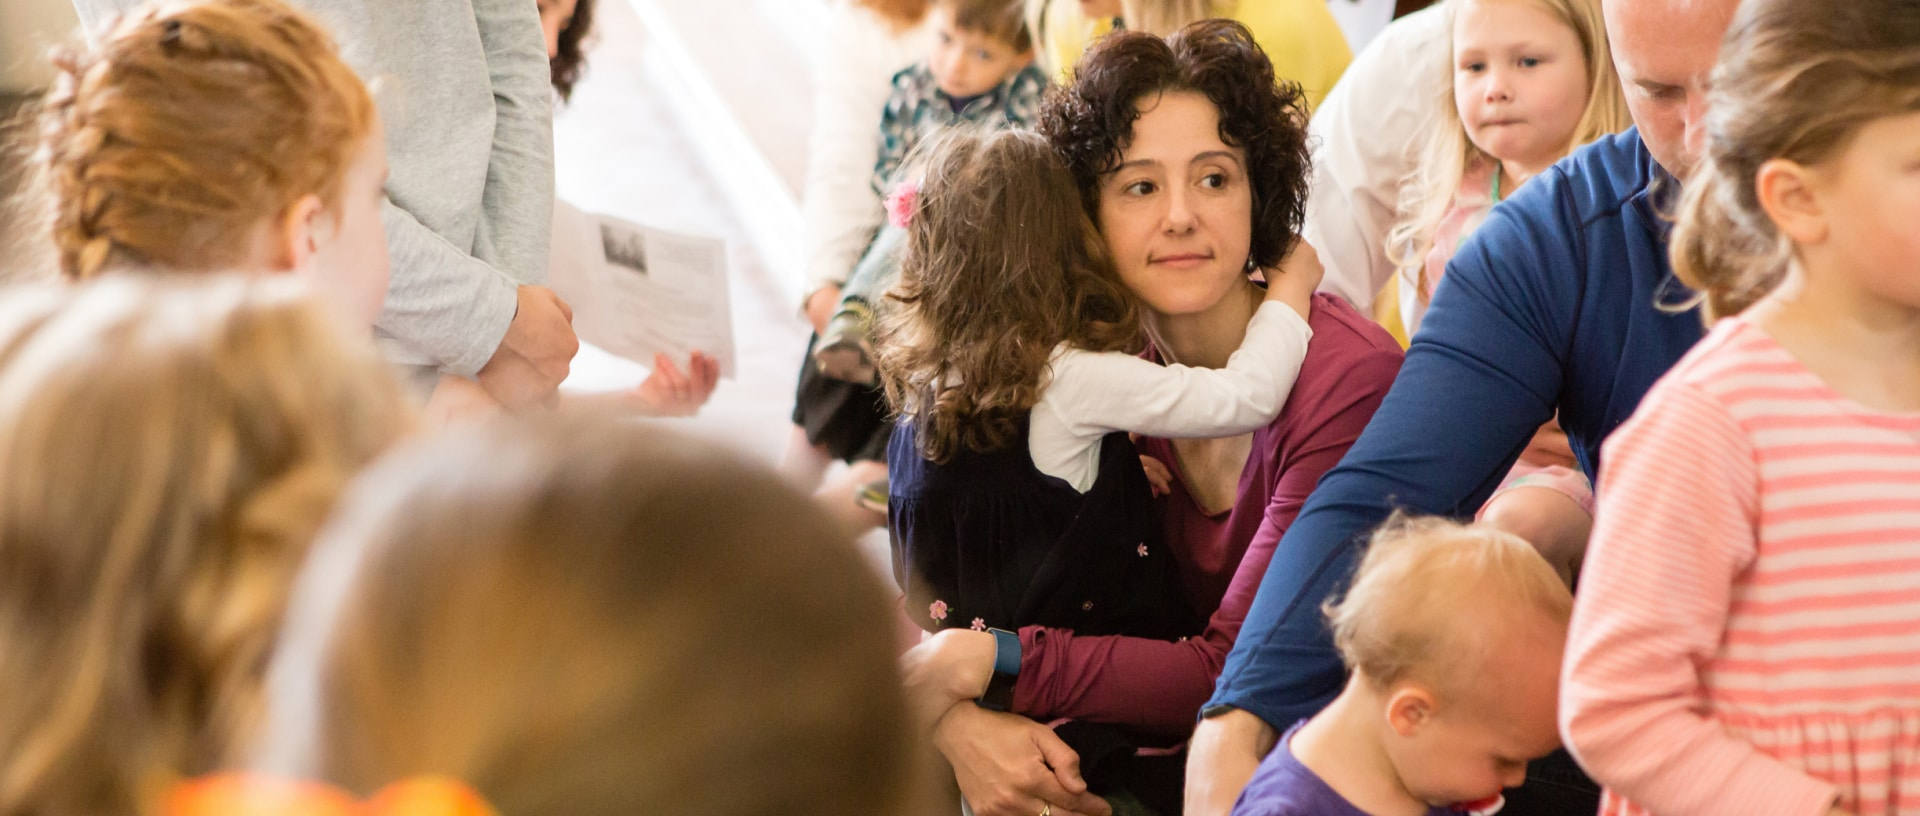 A mother hugs her daughter during the children's sermon. Other parents and children surround them.